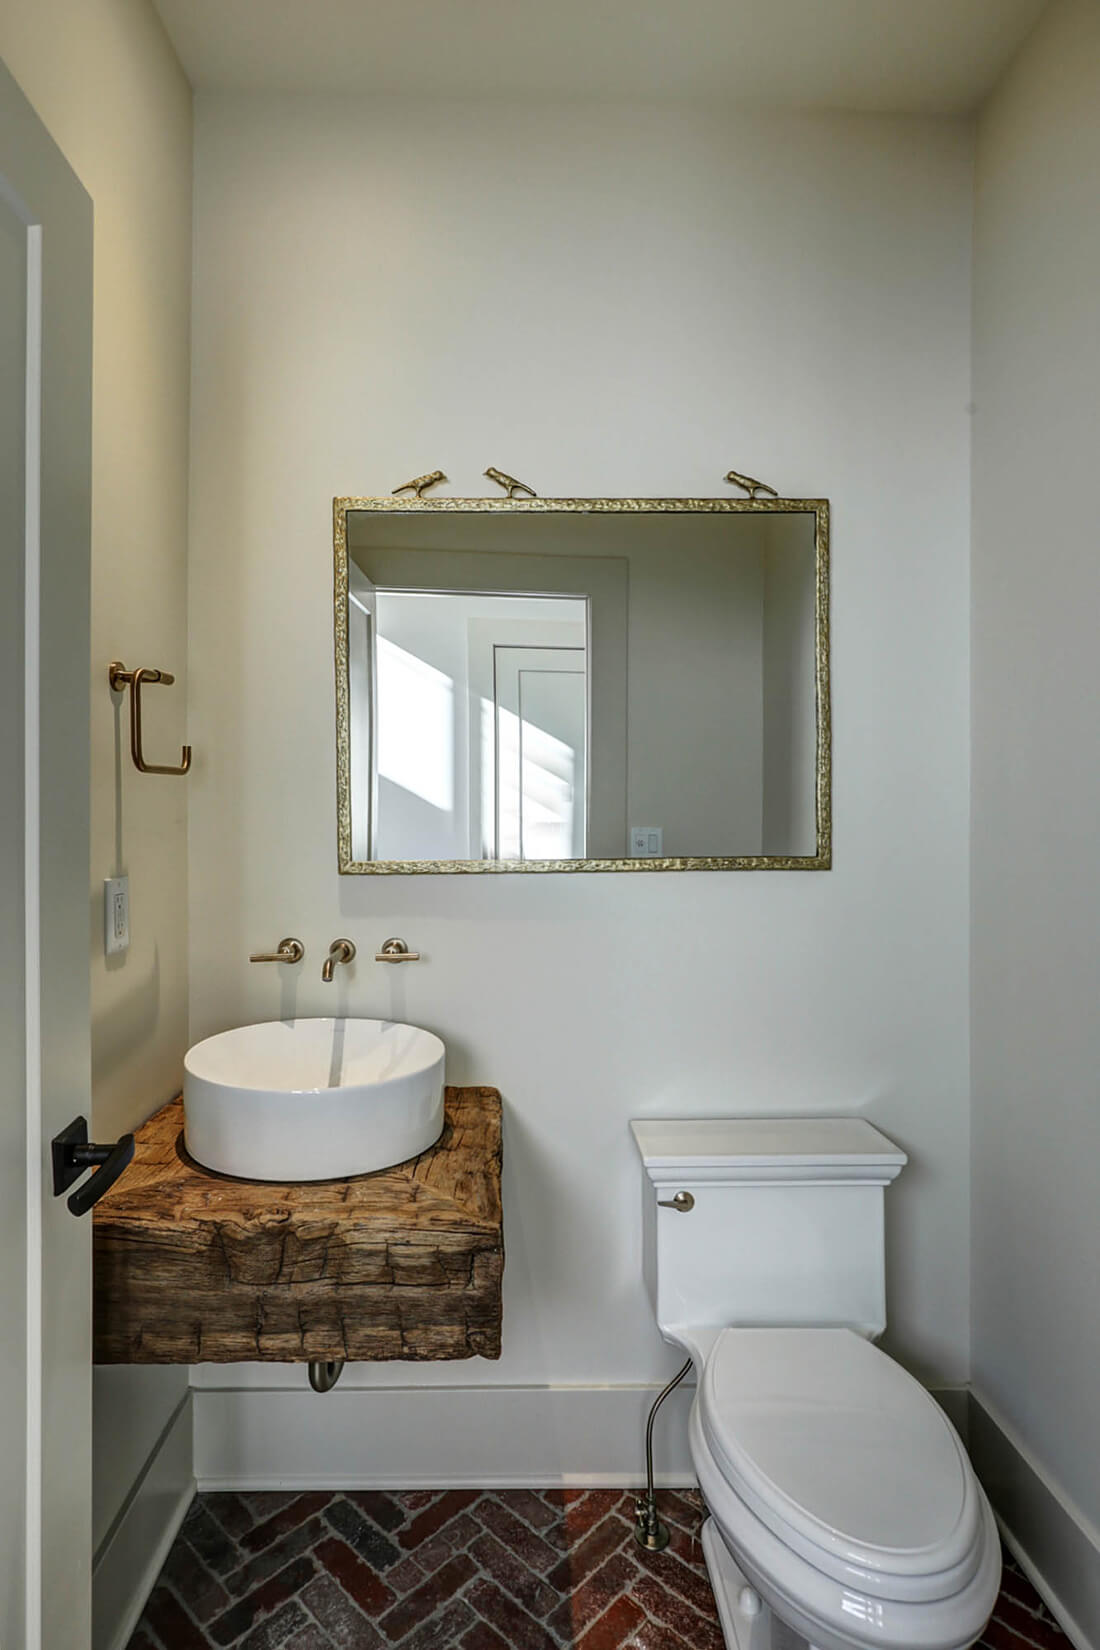 221 Golf Edge Powder Room